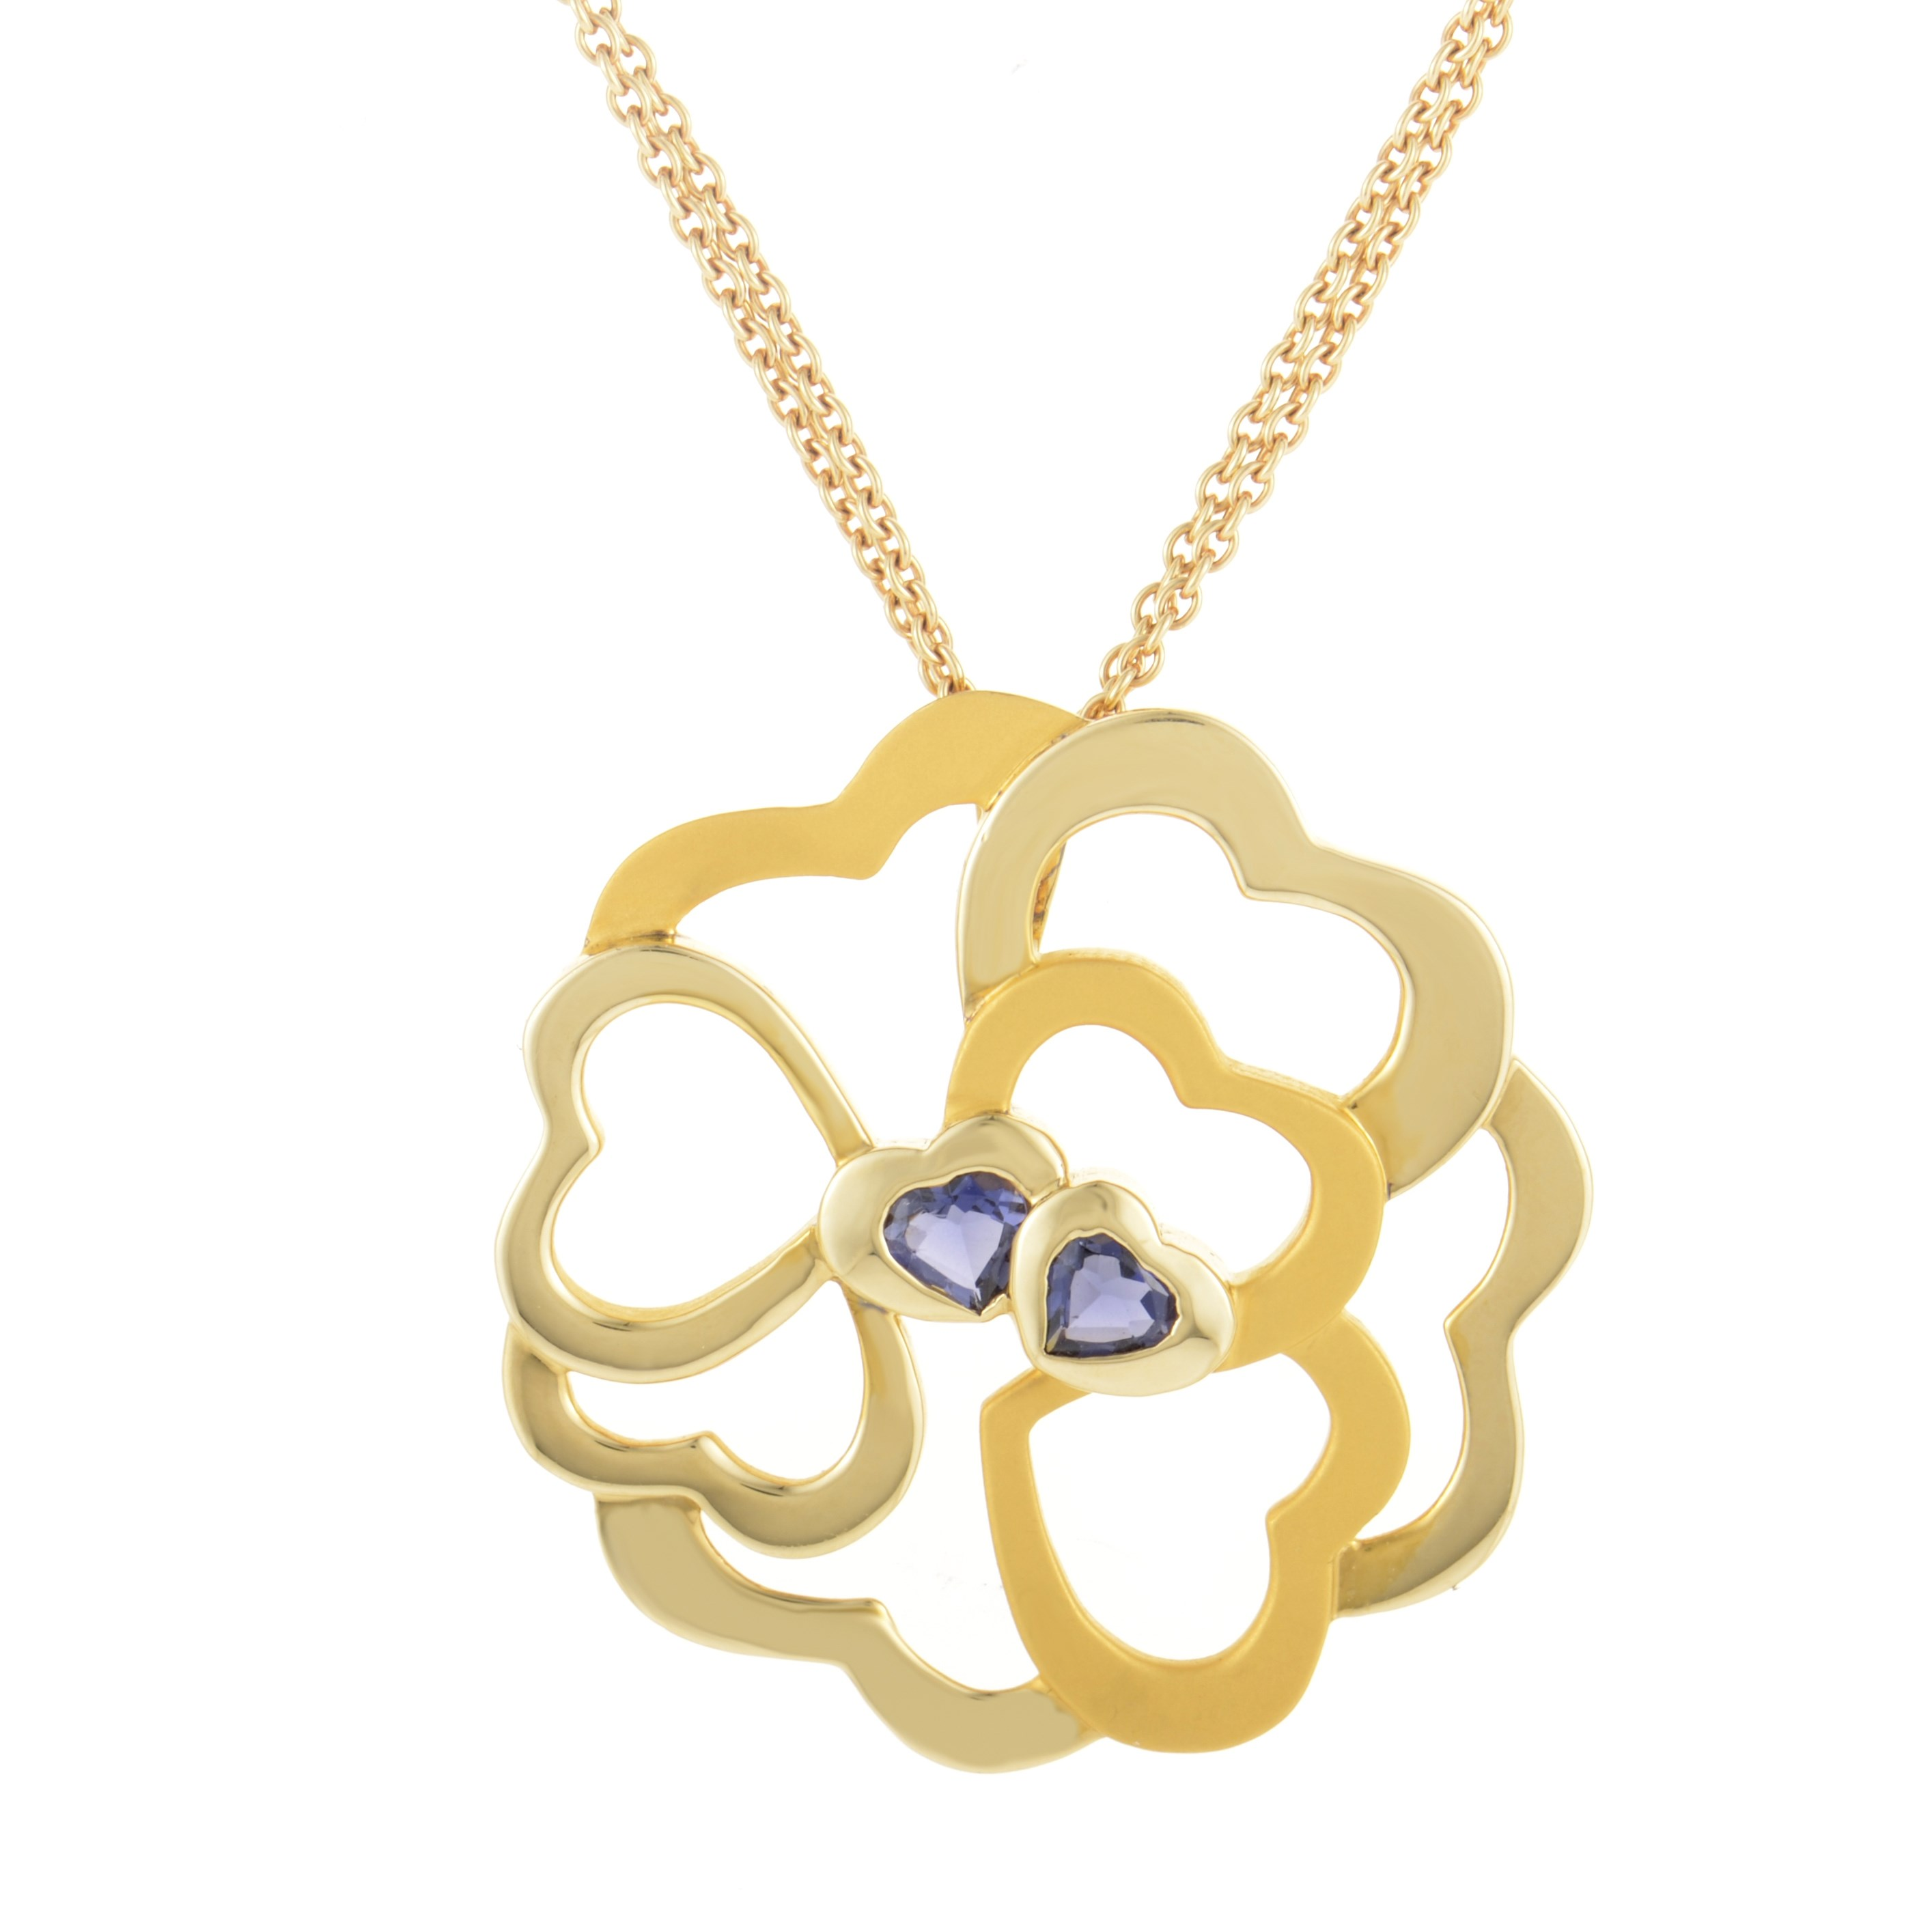 Large 18K Yellow Gold & Iolite Heart Cluster Pendant Necklace DA12955-014018